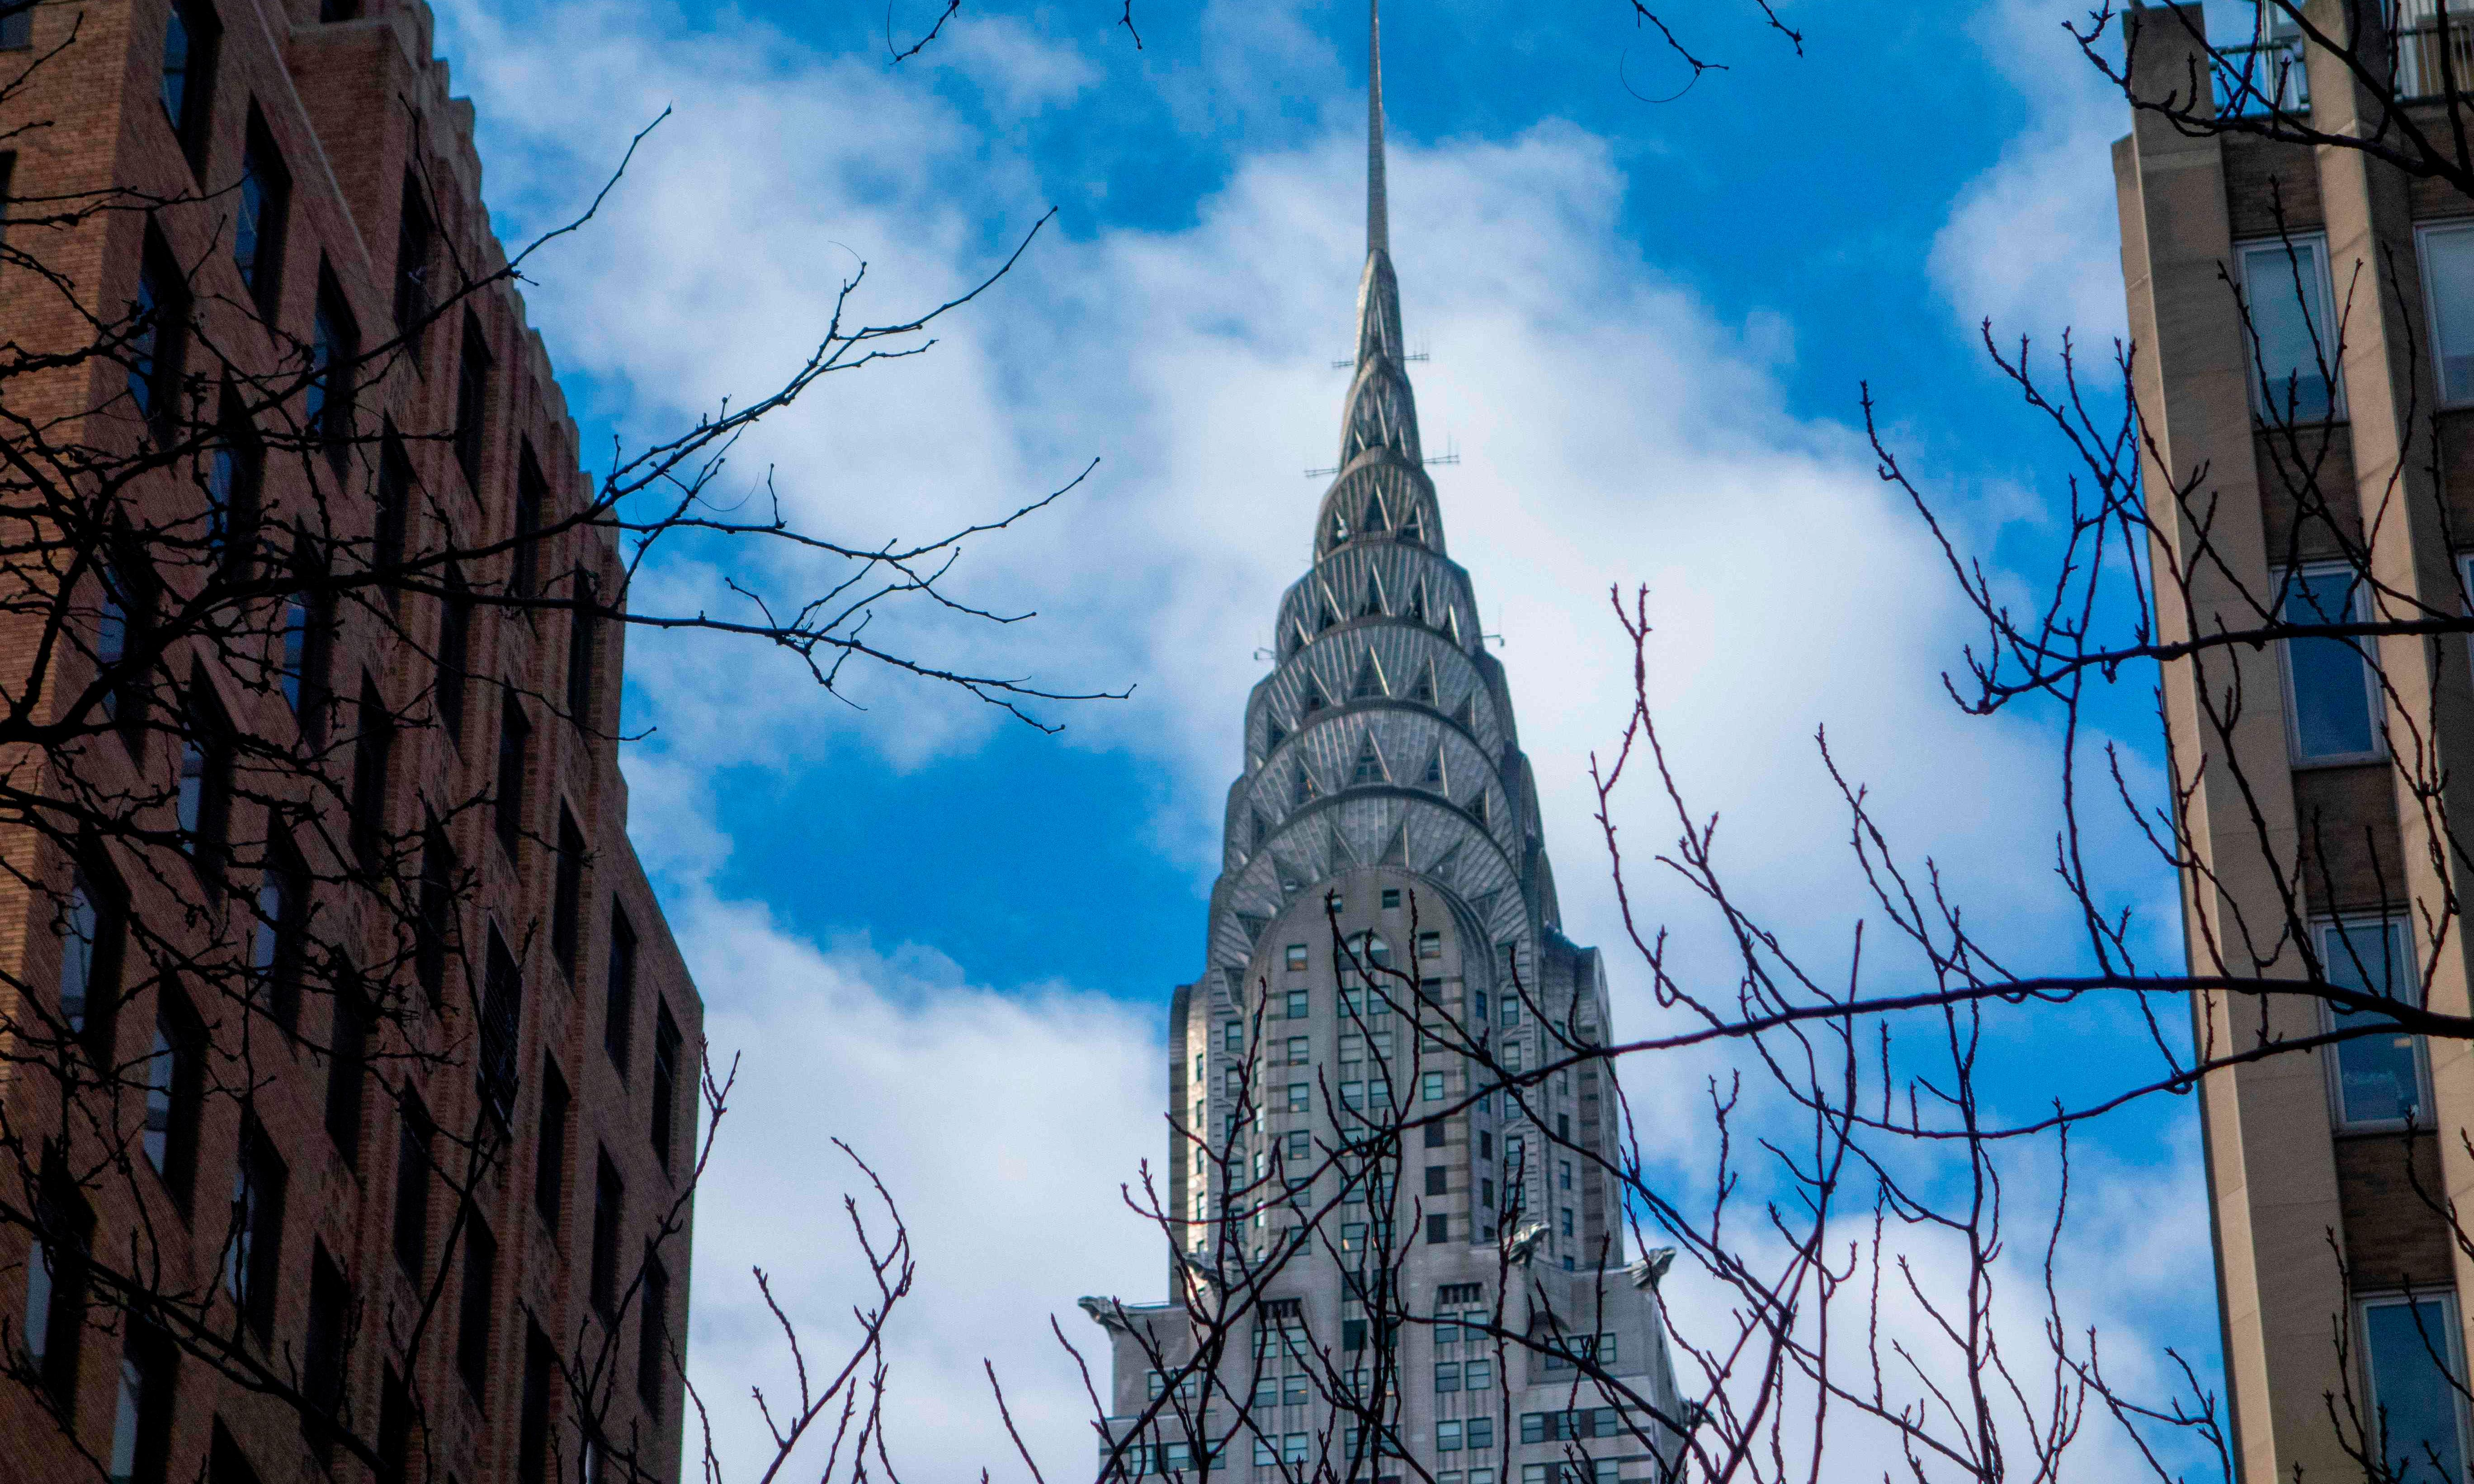 For sale: New York City's second most famous skyscraper